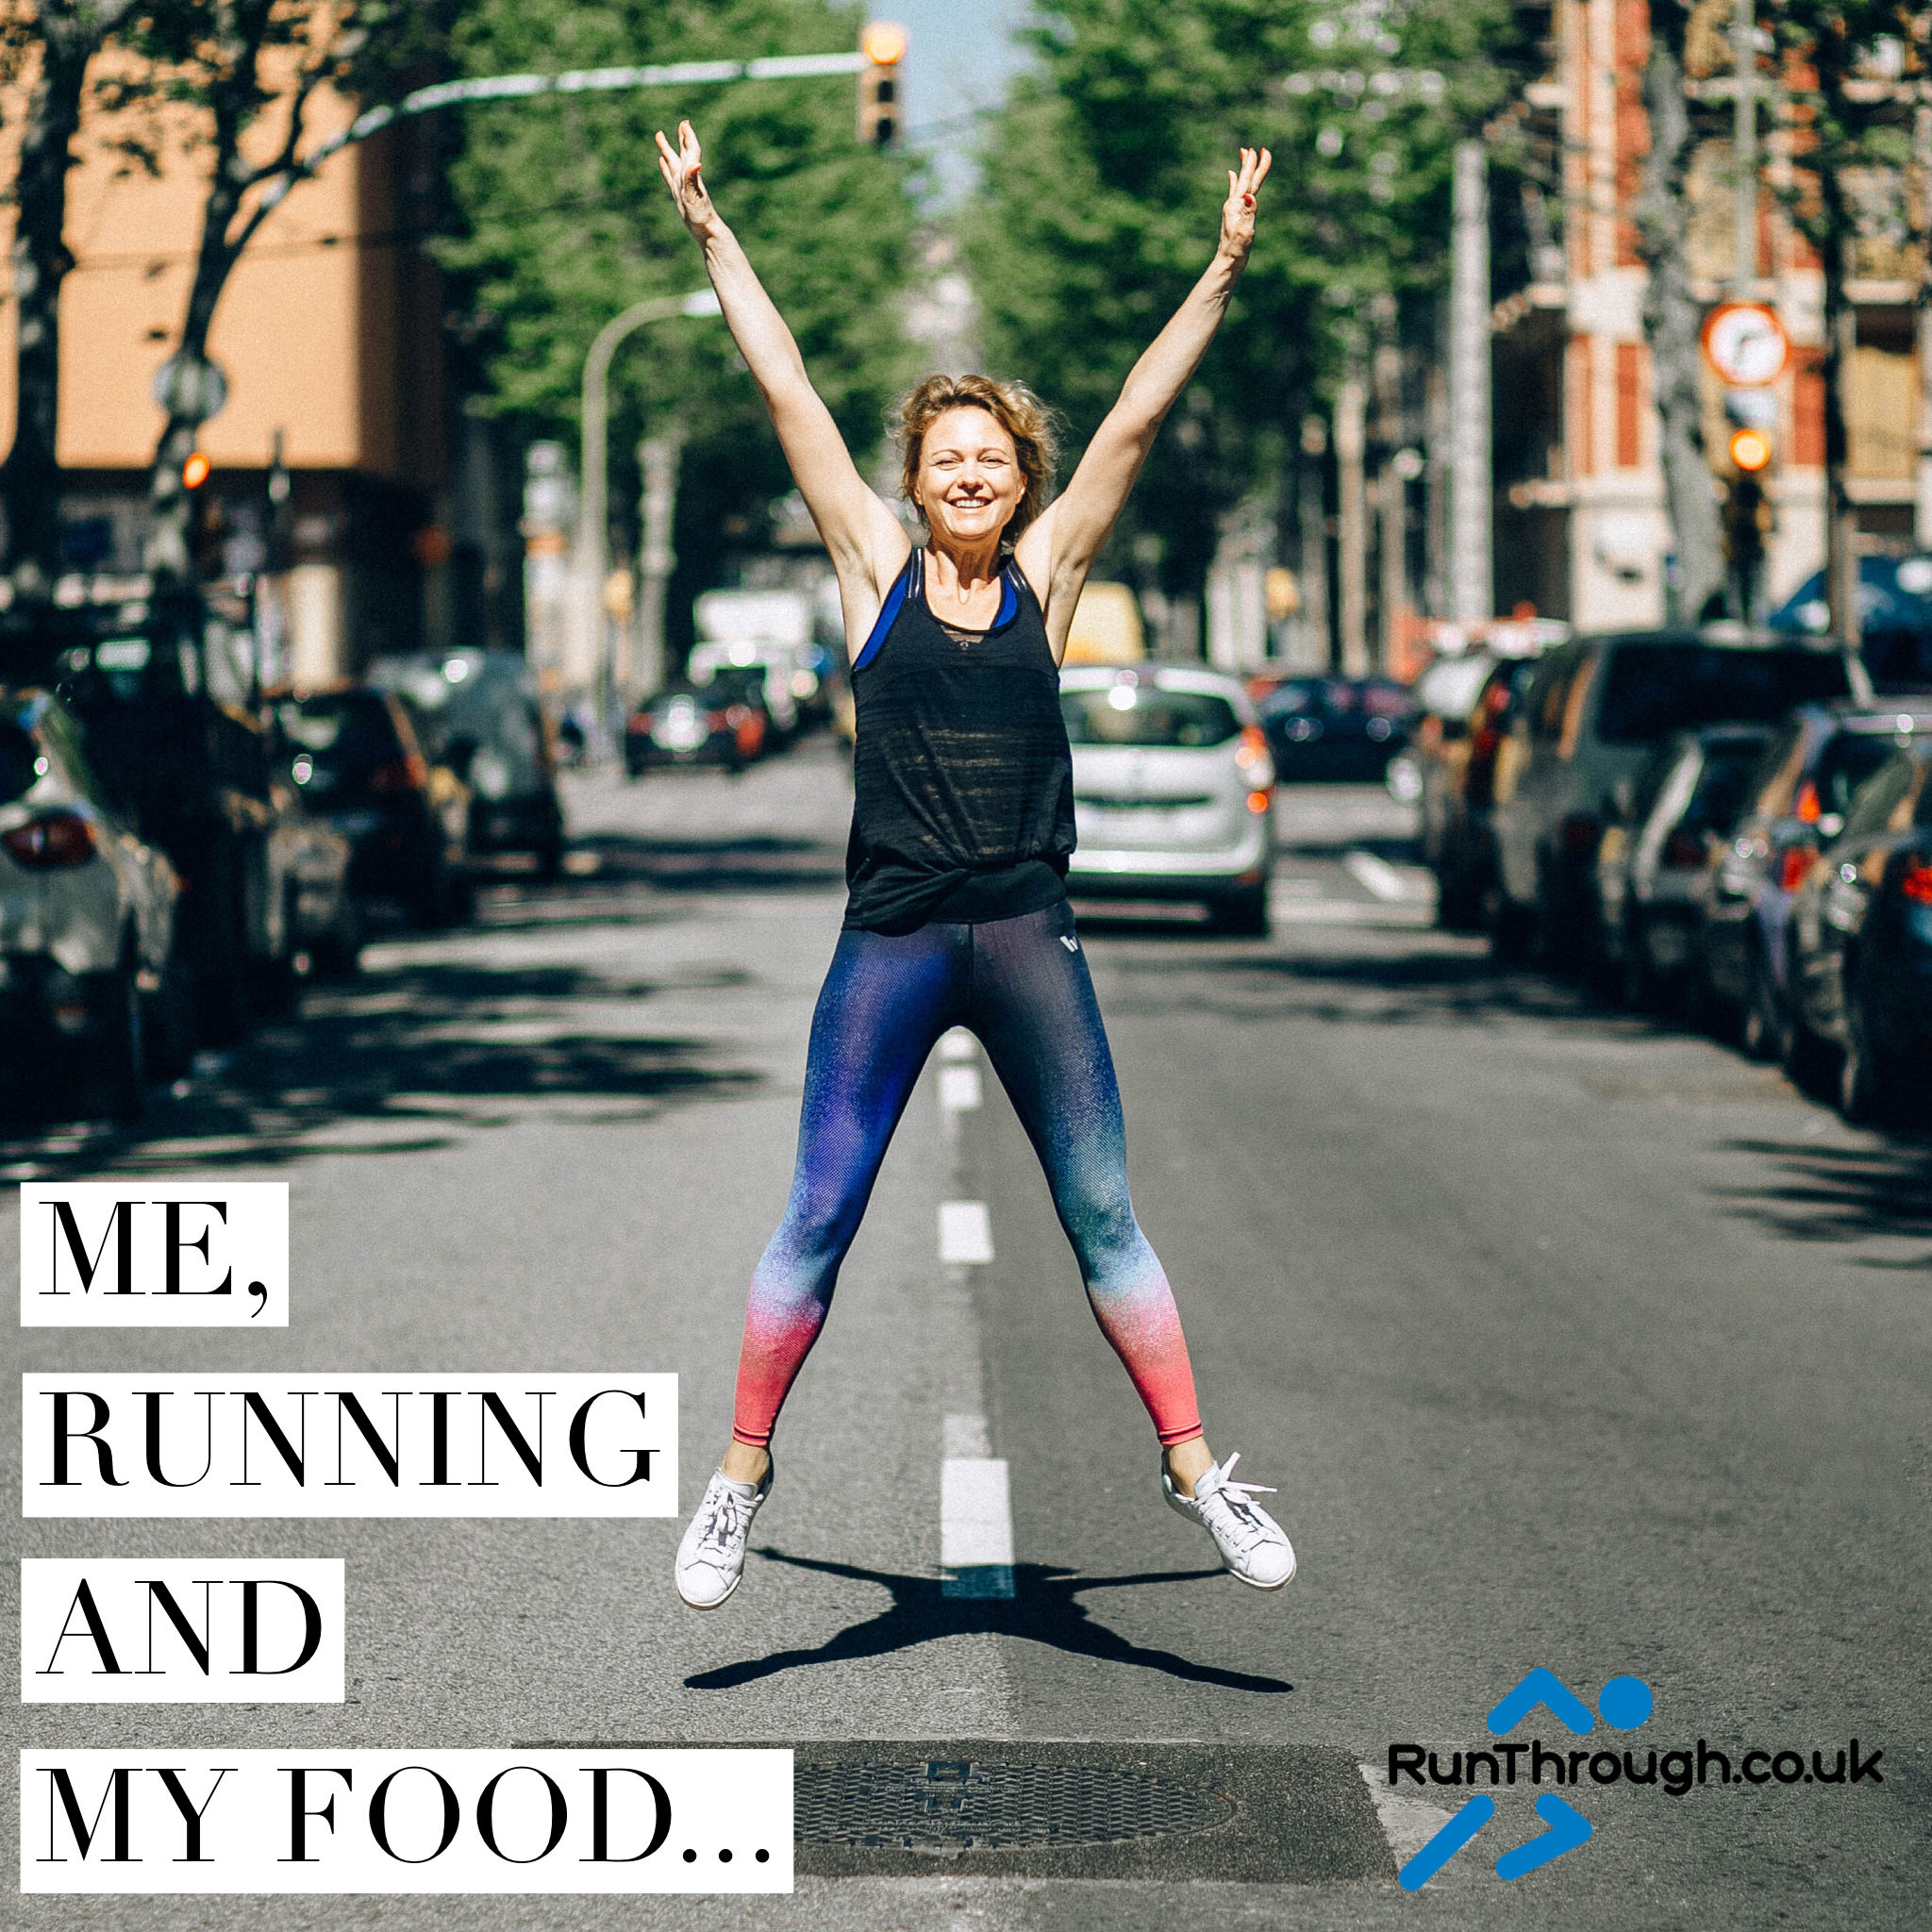 Me, running and my food…